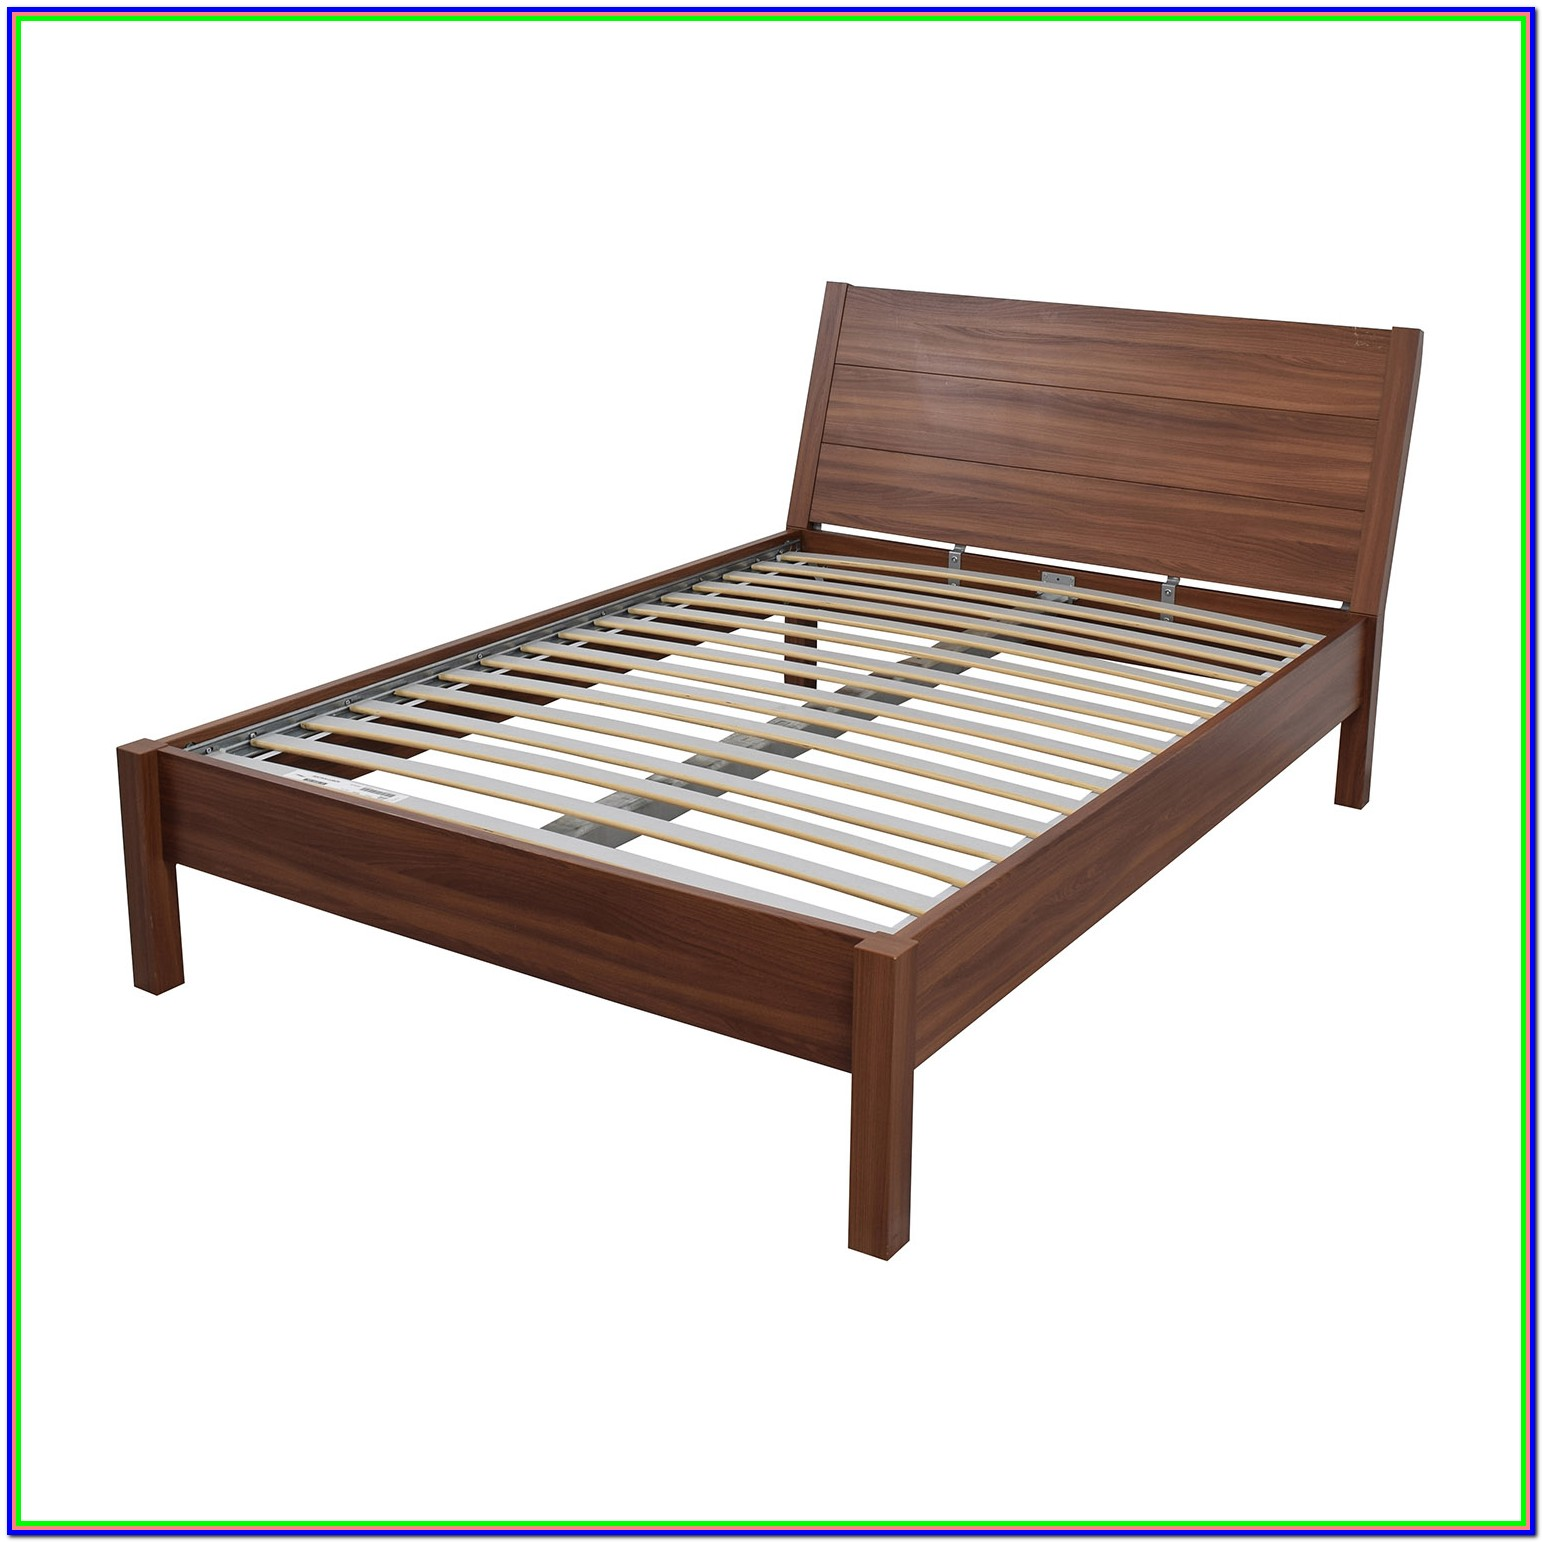 Wooden Queen Bed Frame Ikea